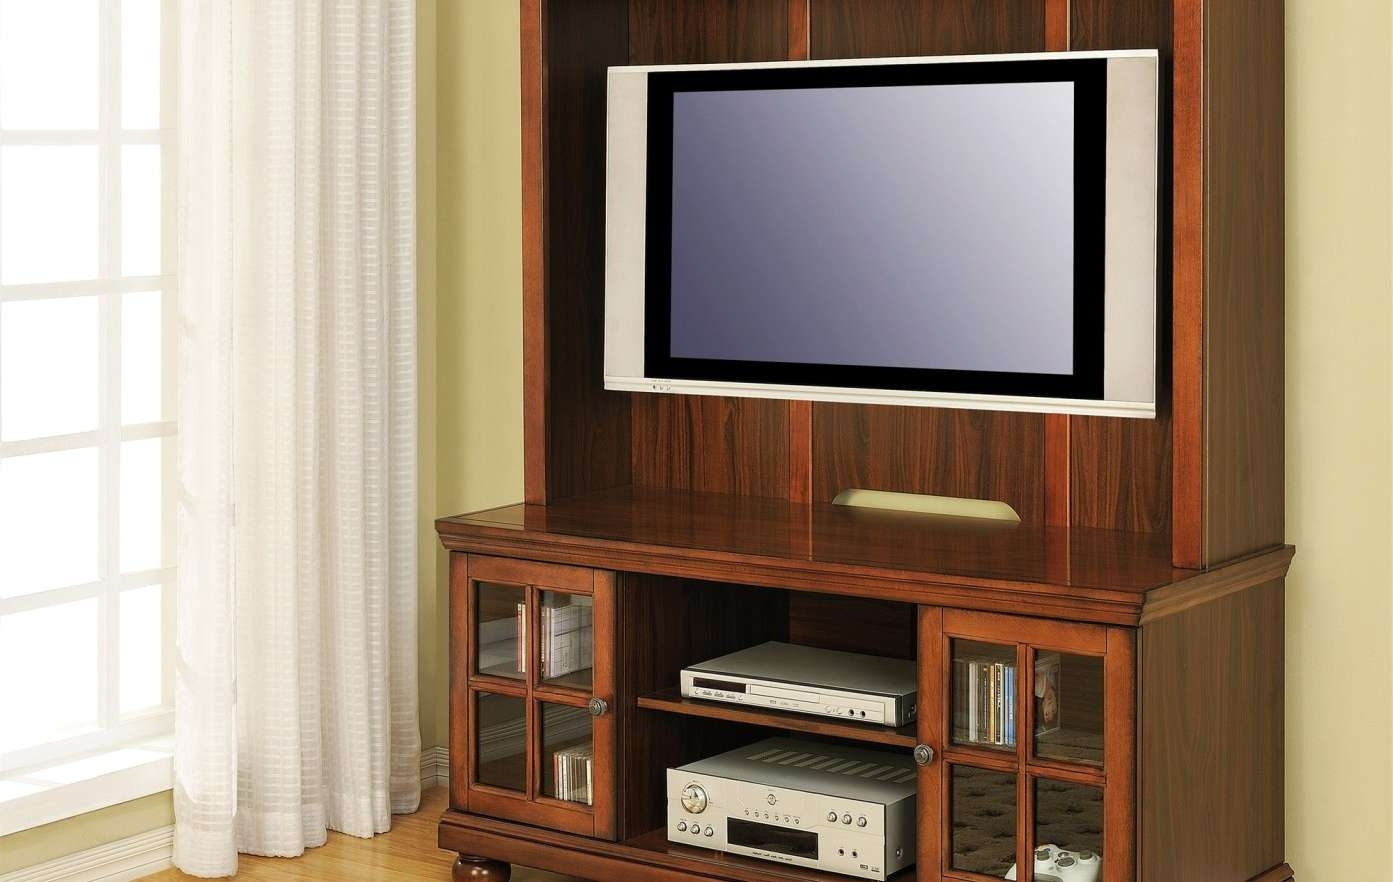 Inspirational Cast Iron Pipe Tv Stand Tags : Cast Iron Tv Stands Pertaining To Cast Iron Tv Stands (View 7 of 15)